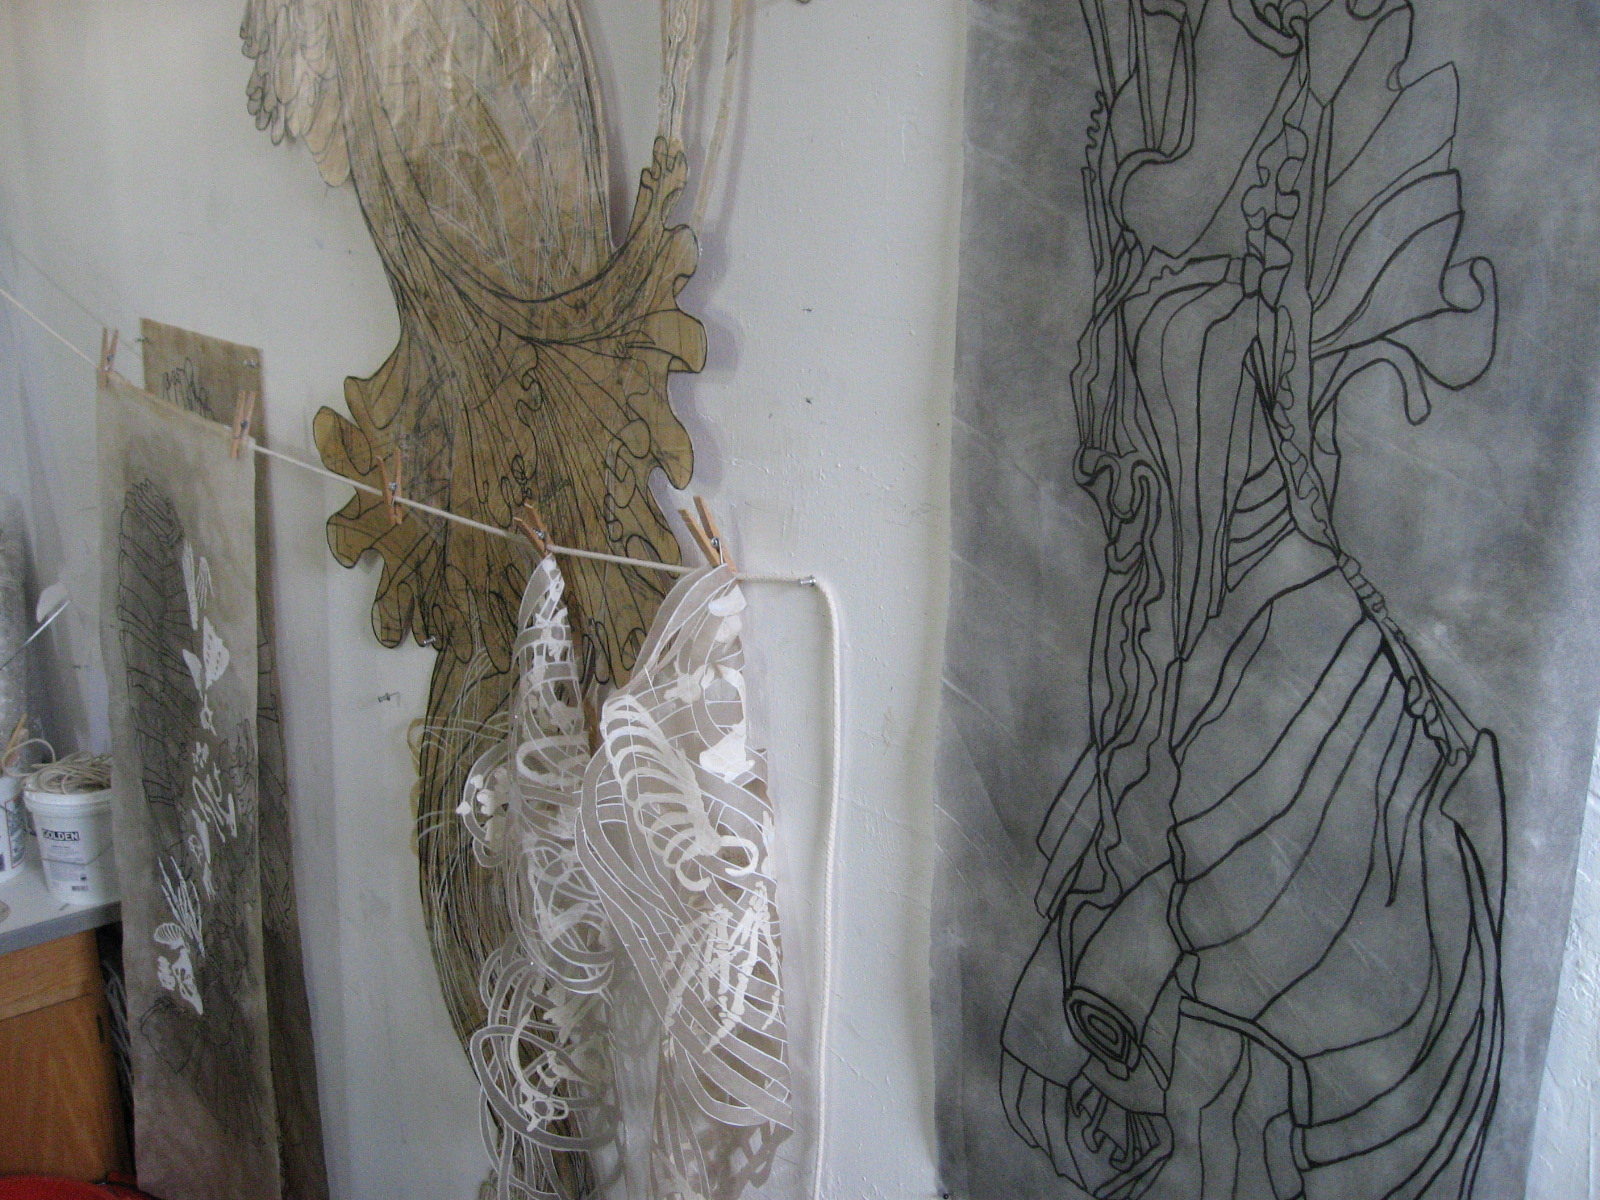 Studio Installation Detail